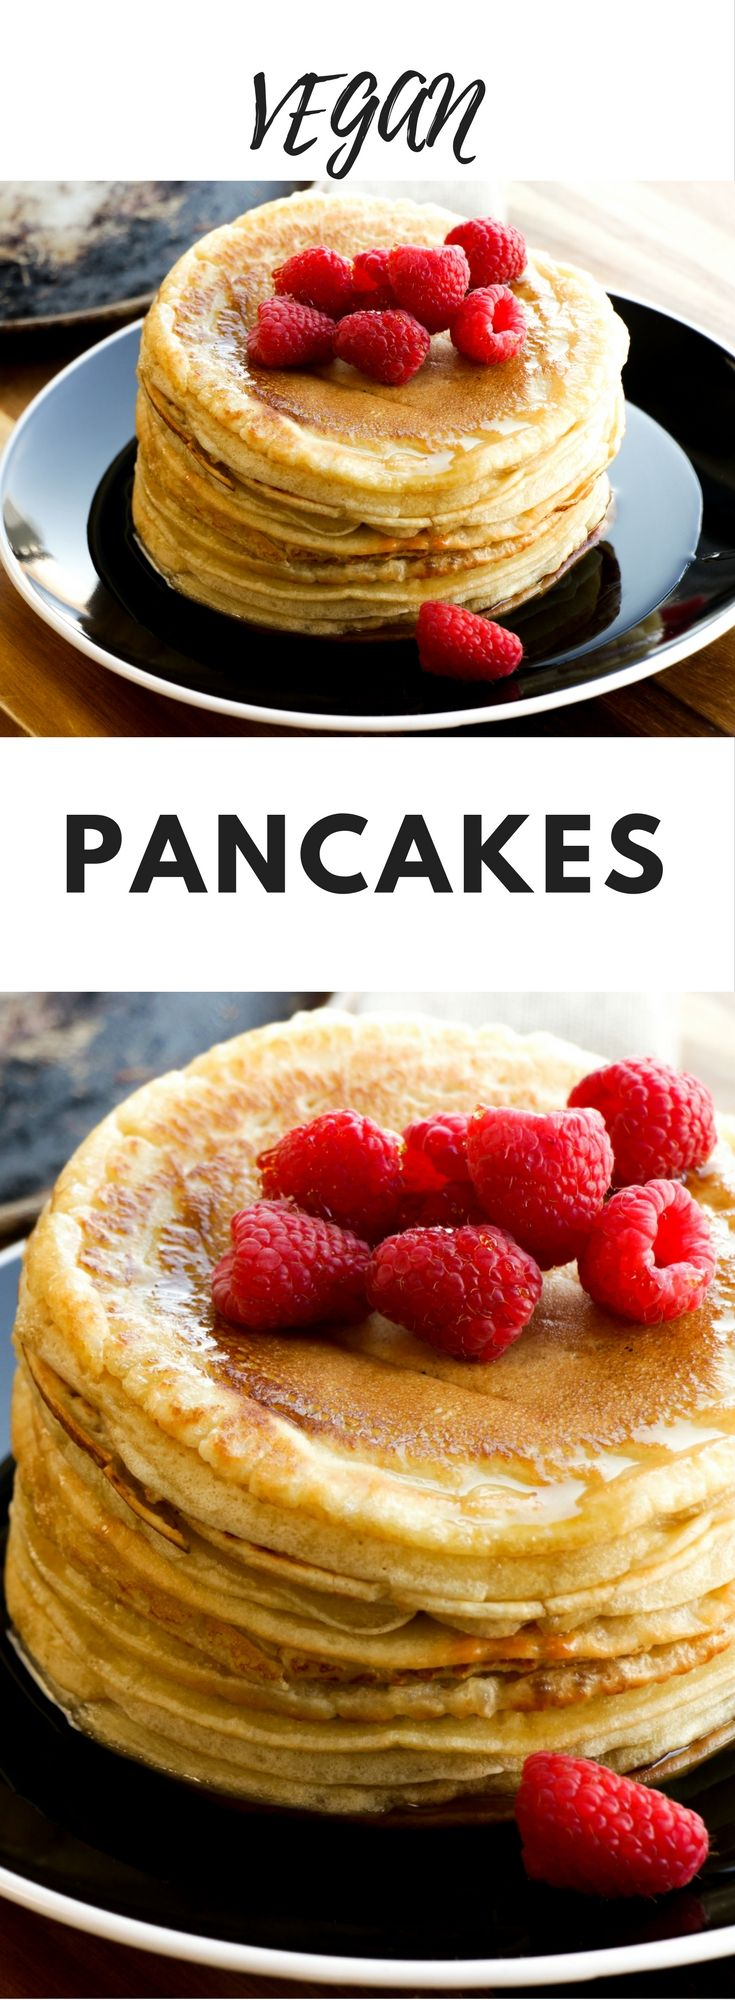 Vegan Pancakes - I've been working hard developing a vegan pancake recipe that is not only as good as traditional pancakes, but even better. Voilà! This egg-free, dairy-free pancake mix is so good that everyone will ask for more. Here is another wounderful breakfast idea: tofu scramble !